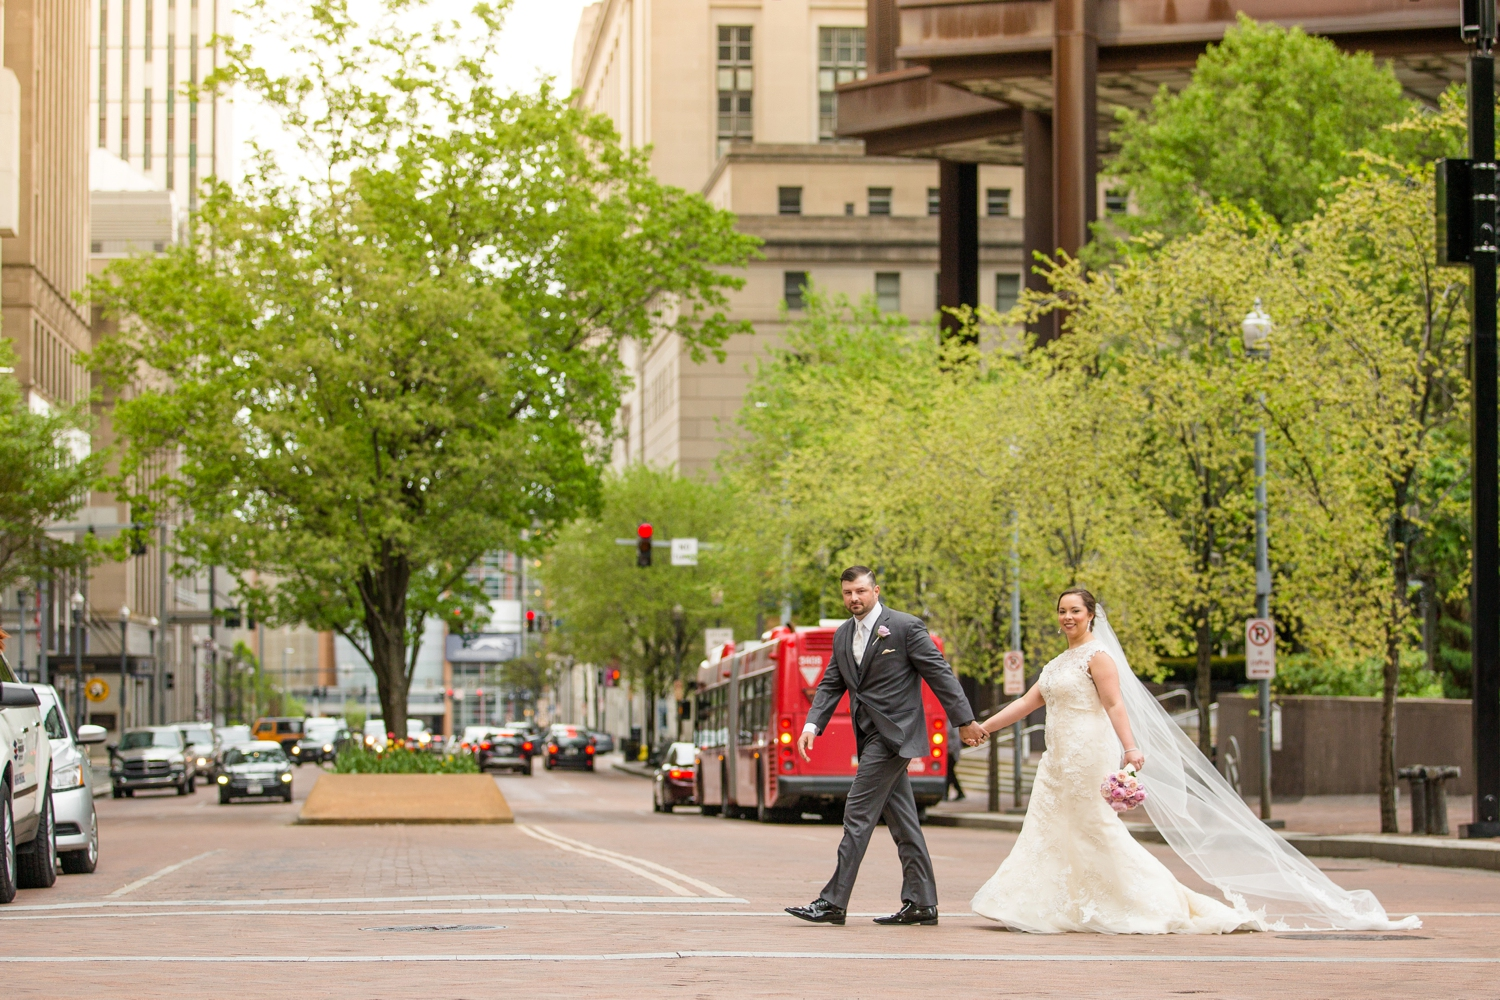 embassy suites downtown pittsburgh wedding pictures, pittsburgh wedding photographer, Mount Saint Peter Church New Kensington Wedding, wedding photo inspiration, wedding photo ideas